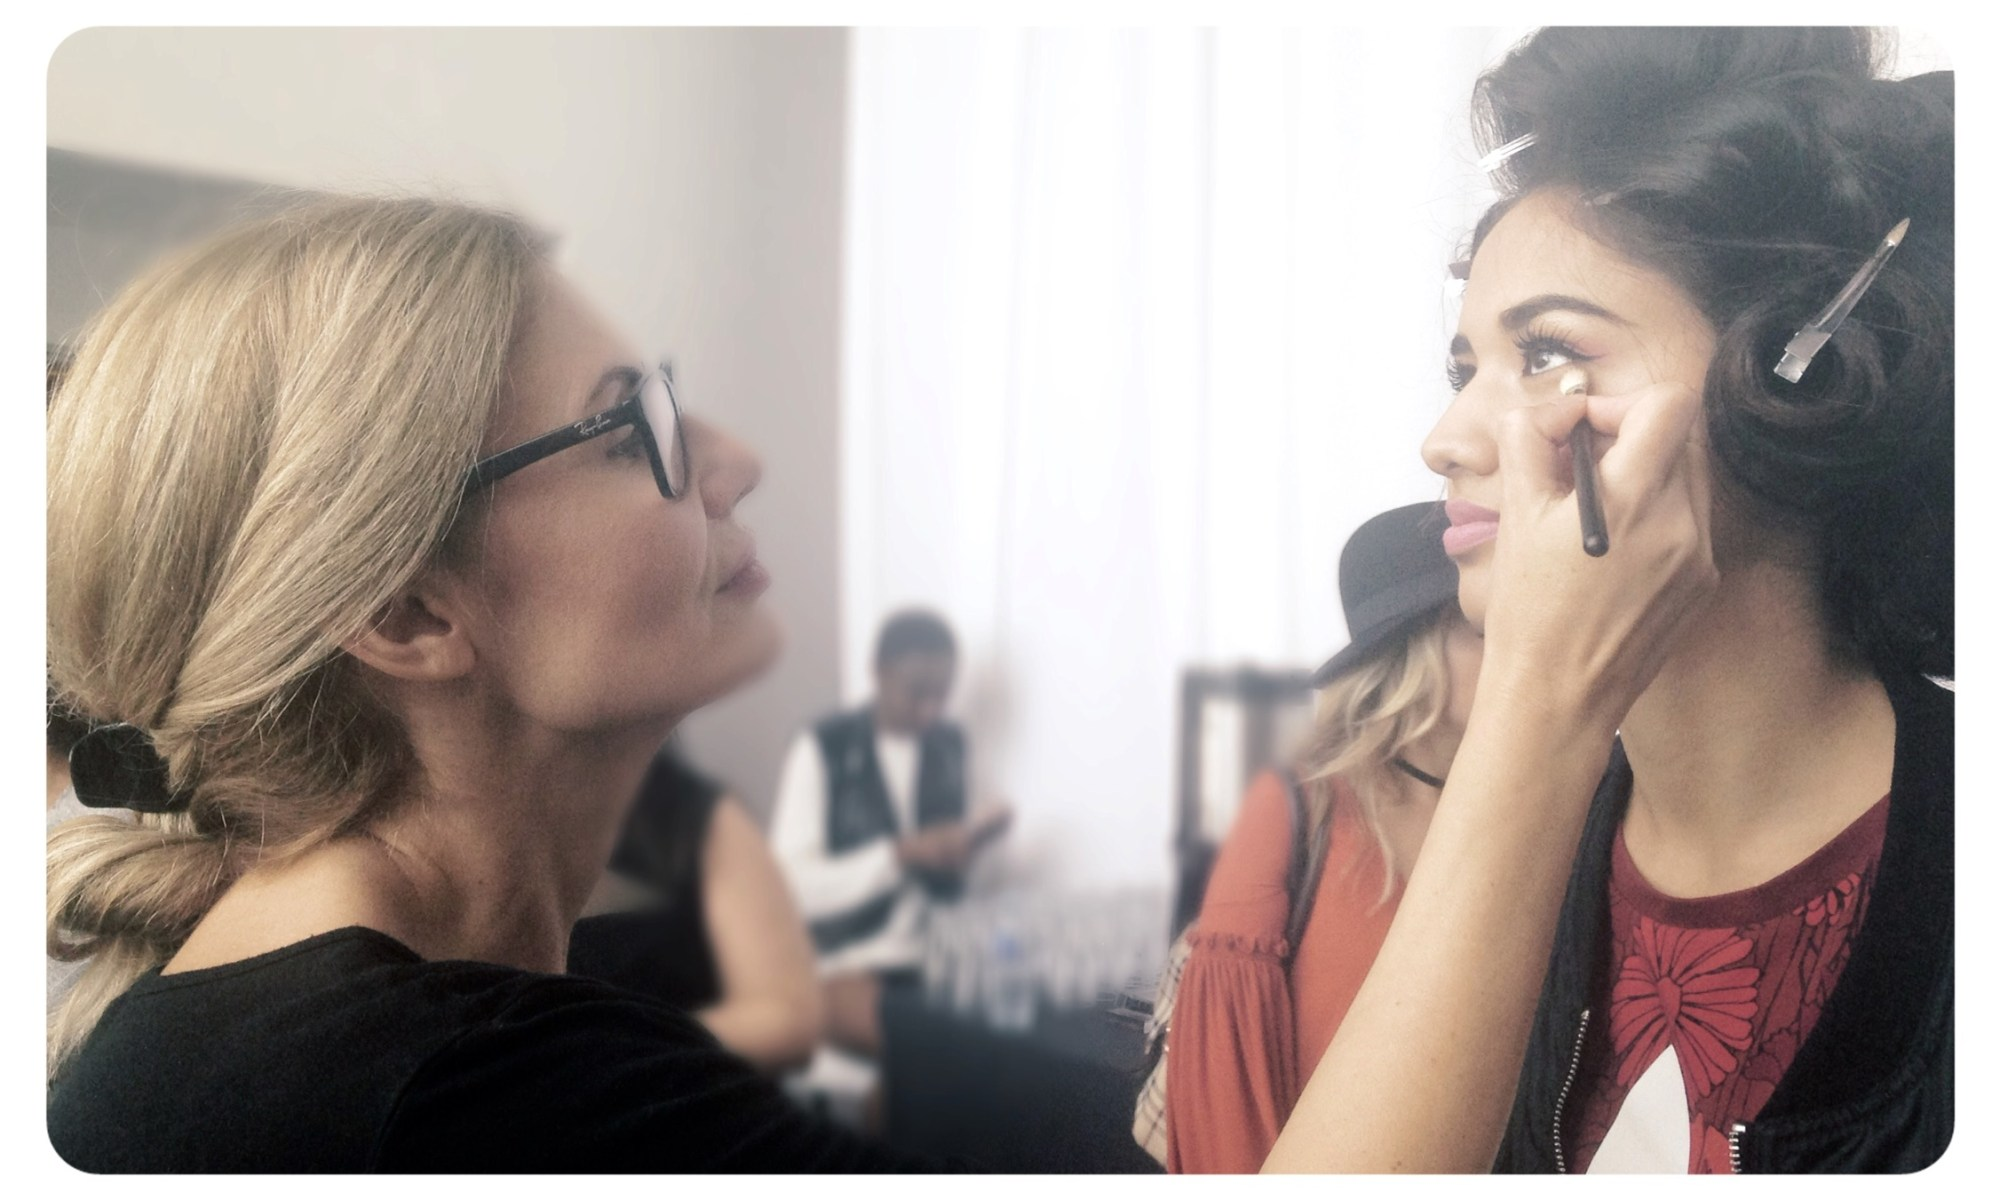 Irene Kyranis, a Bridal make up artist in Greece is applying make up to a beautiful bride